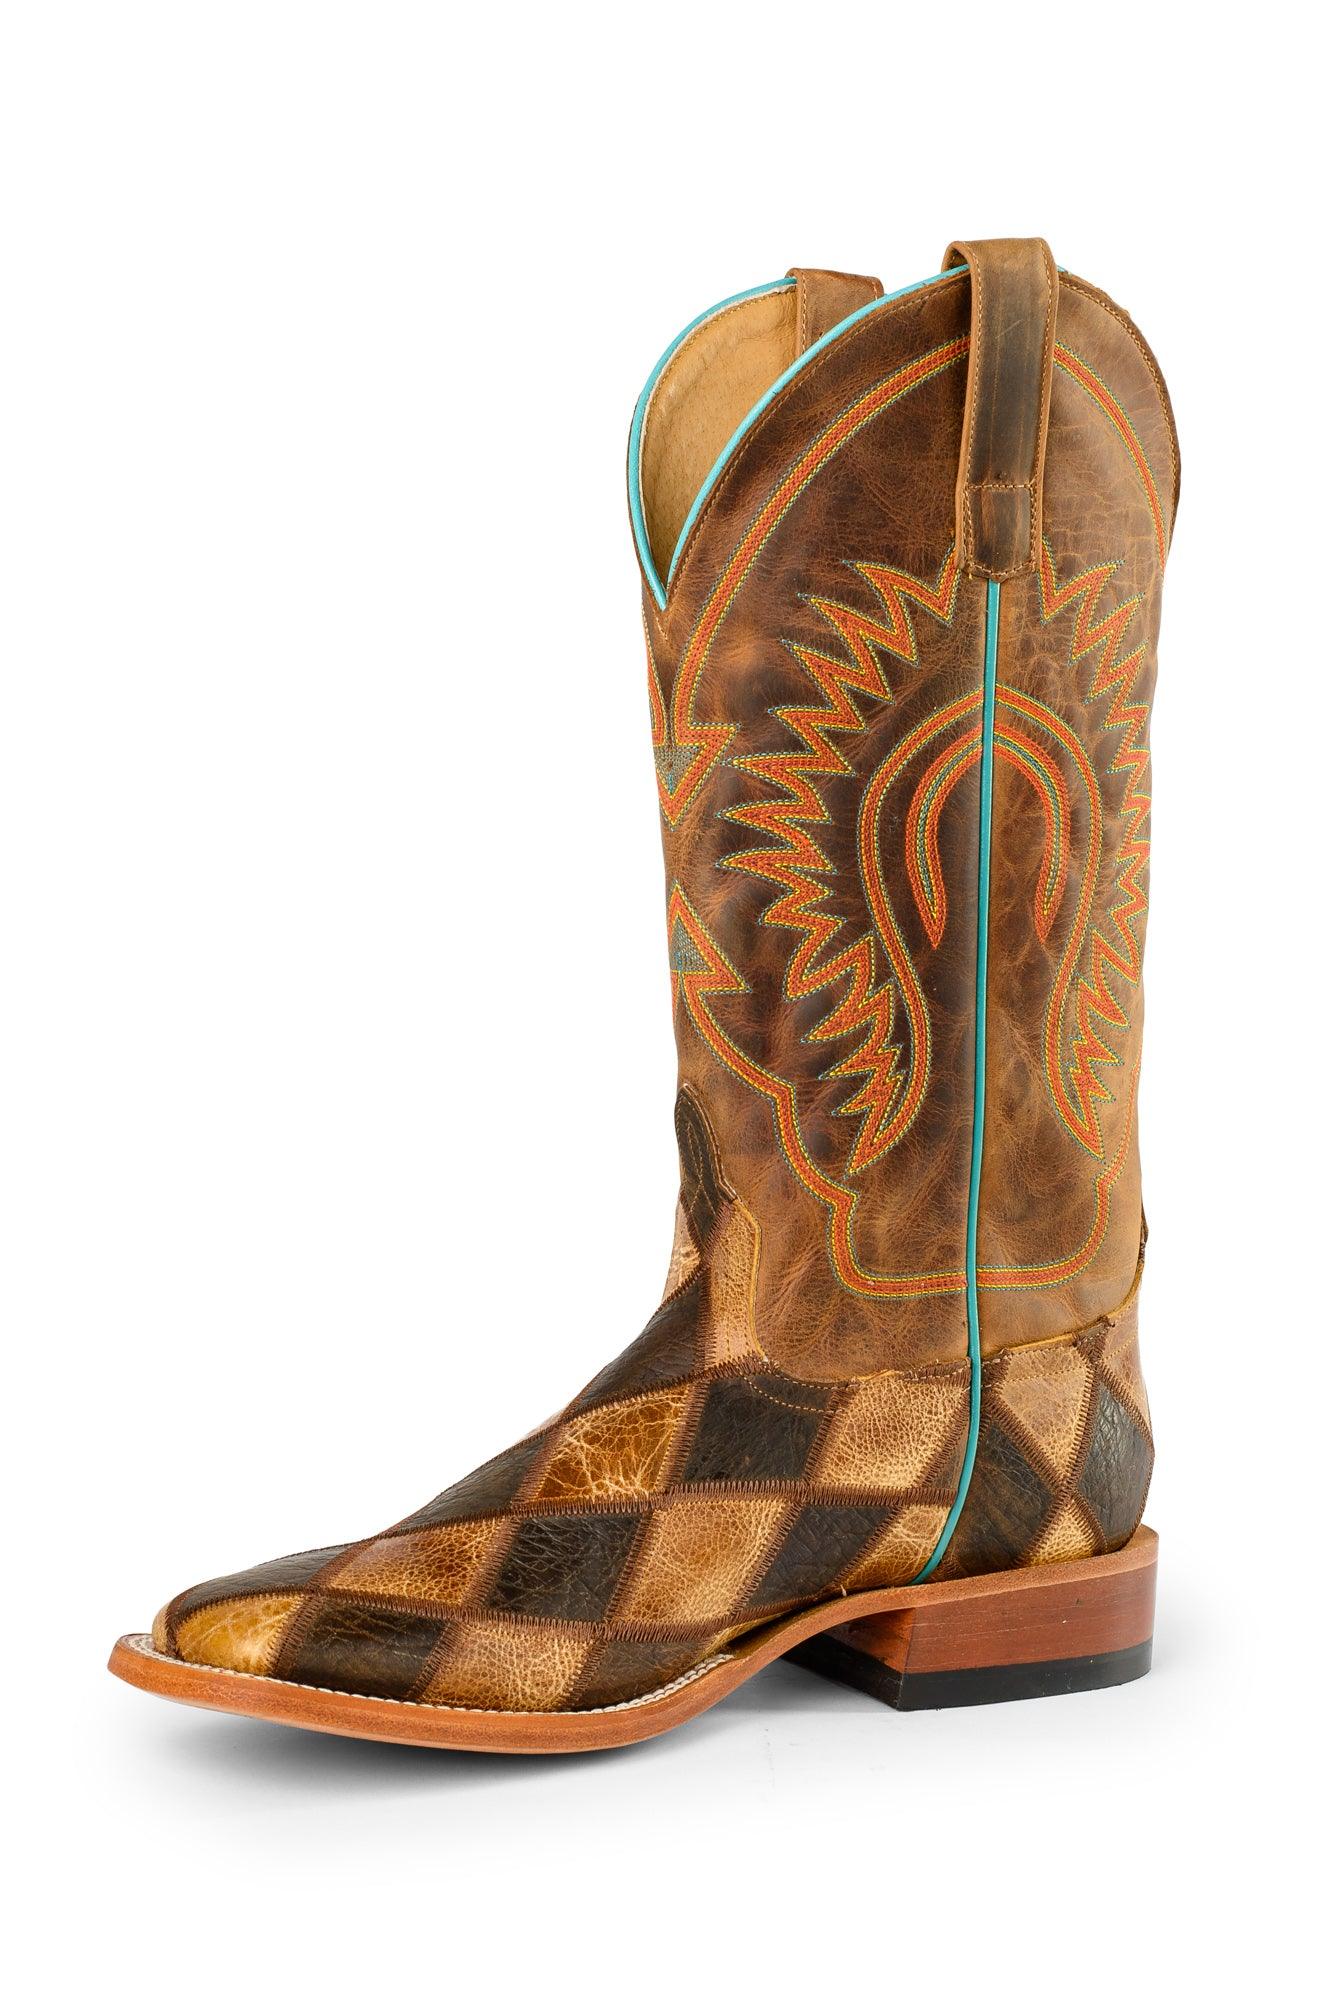 b08e18d5dd7 Horse Power by Anderson Bean Mens Honey Leather Cowboy Boots ...